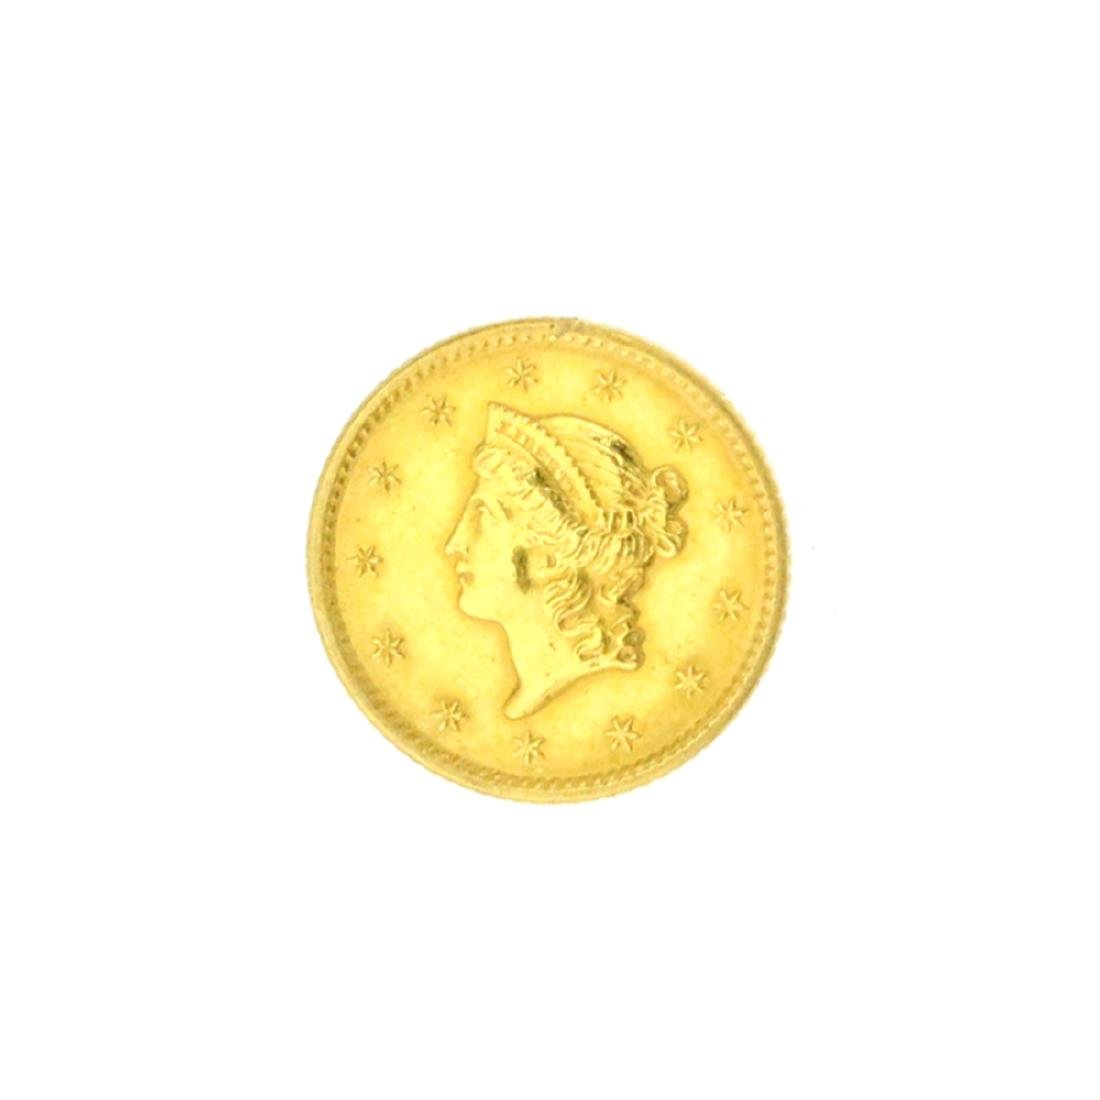 Extremely Rare 1849 $1 U.S. Liberty Head Gold Coin